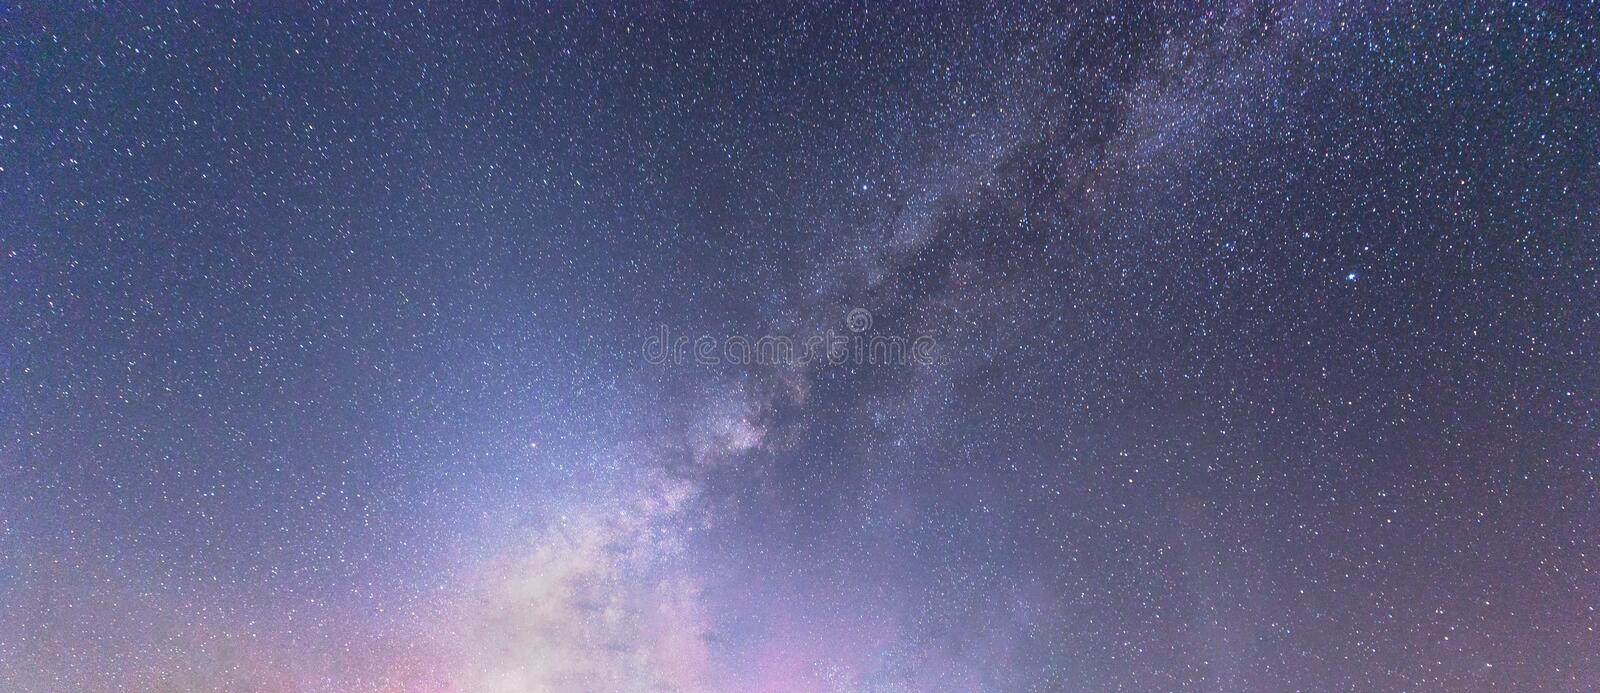 Milky way galaxy with stars at night sky and universe space background. Astronomy of twinkling stars and planets.  royalty free stock images